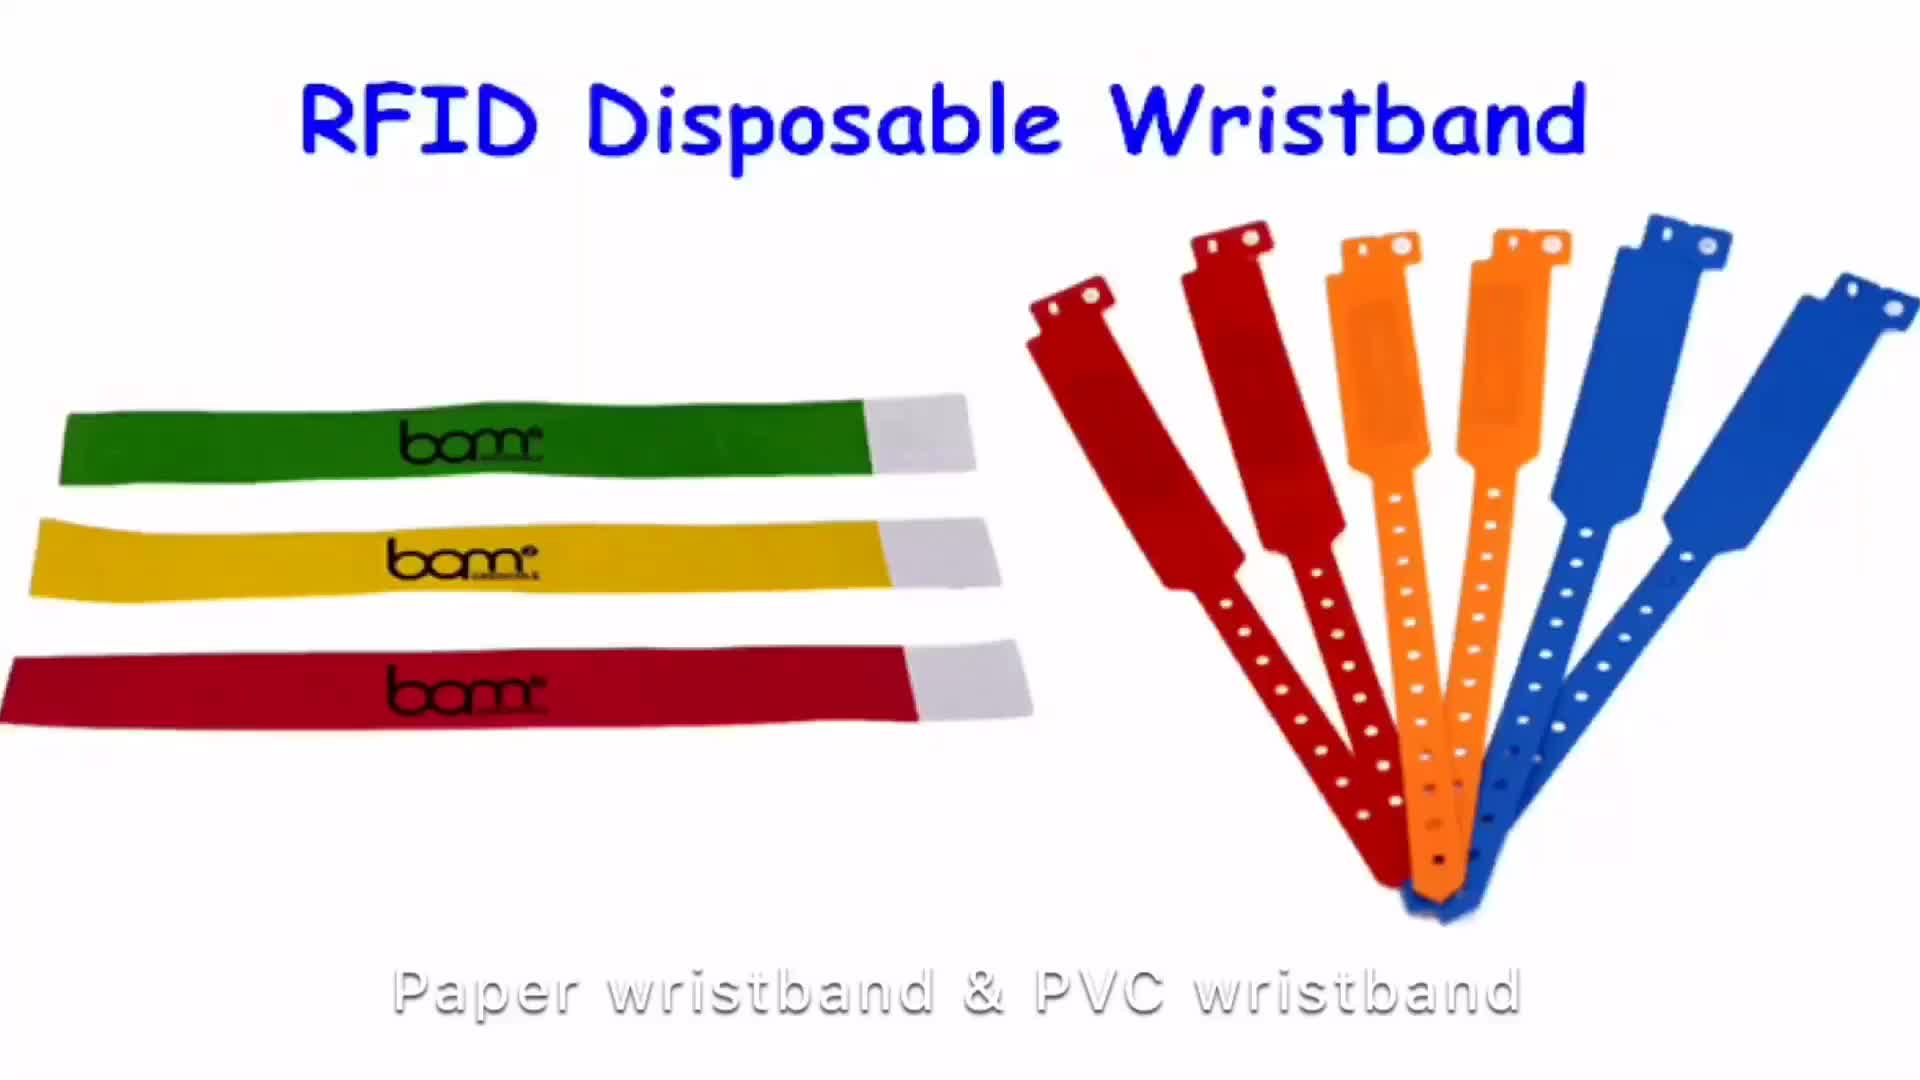 Customized Logos Tyvk Paper Wristband For Activity Party Club Events